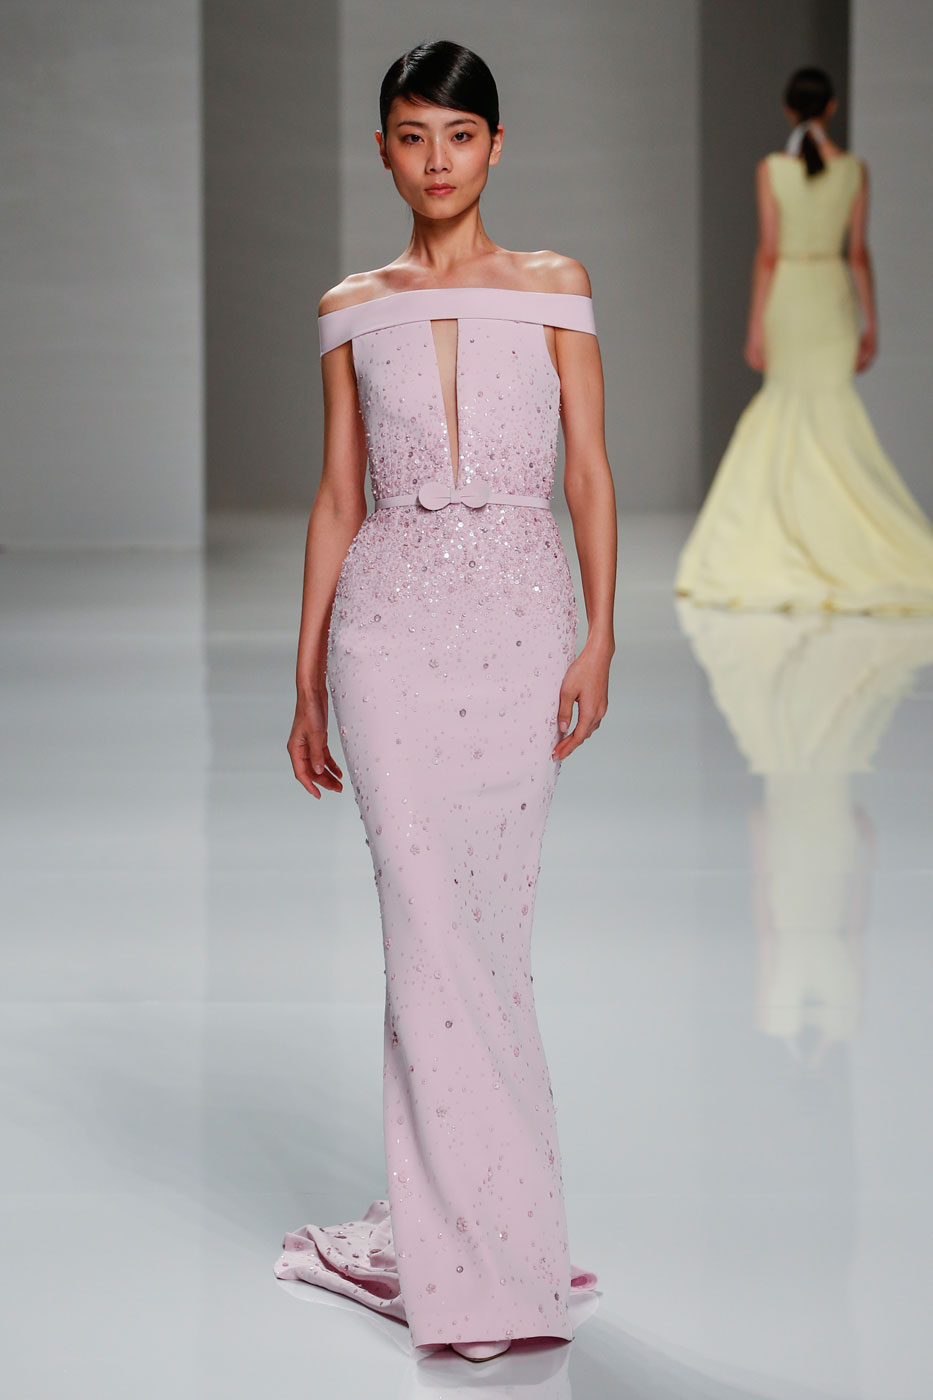 Georges-Hobeika-fashion-runway-show-haute-couture-paris-spring-2015-the-impression-25